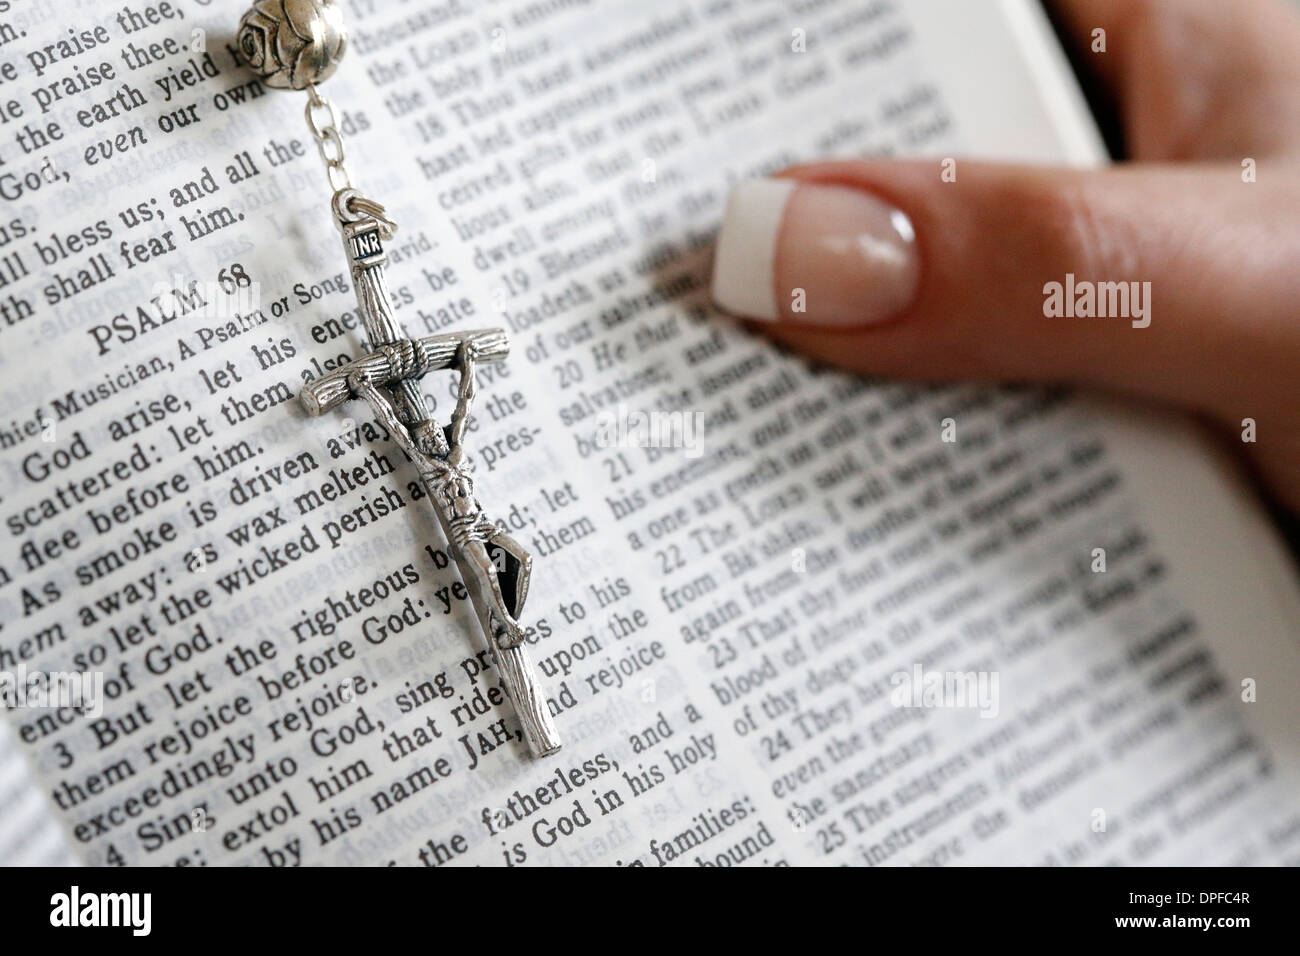 Reading Psalms in the Bible, Paris, France, Europe Stock Photo